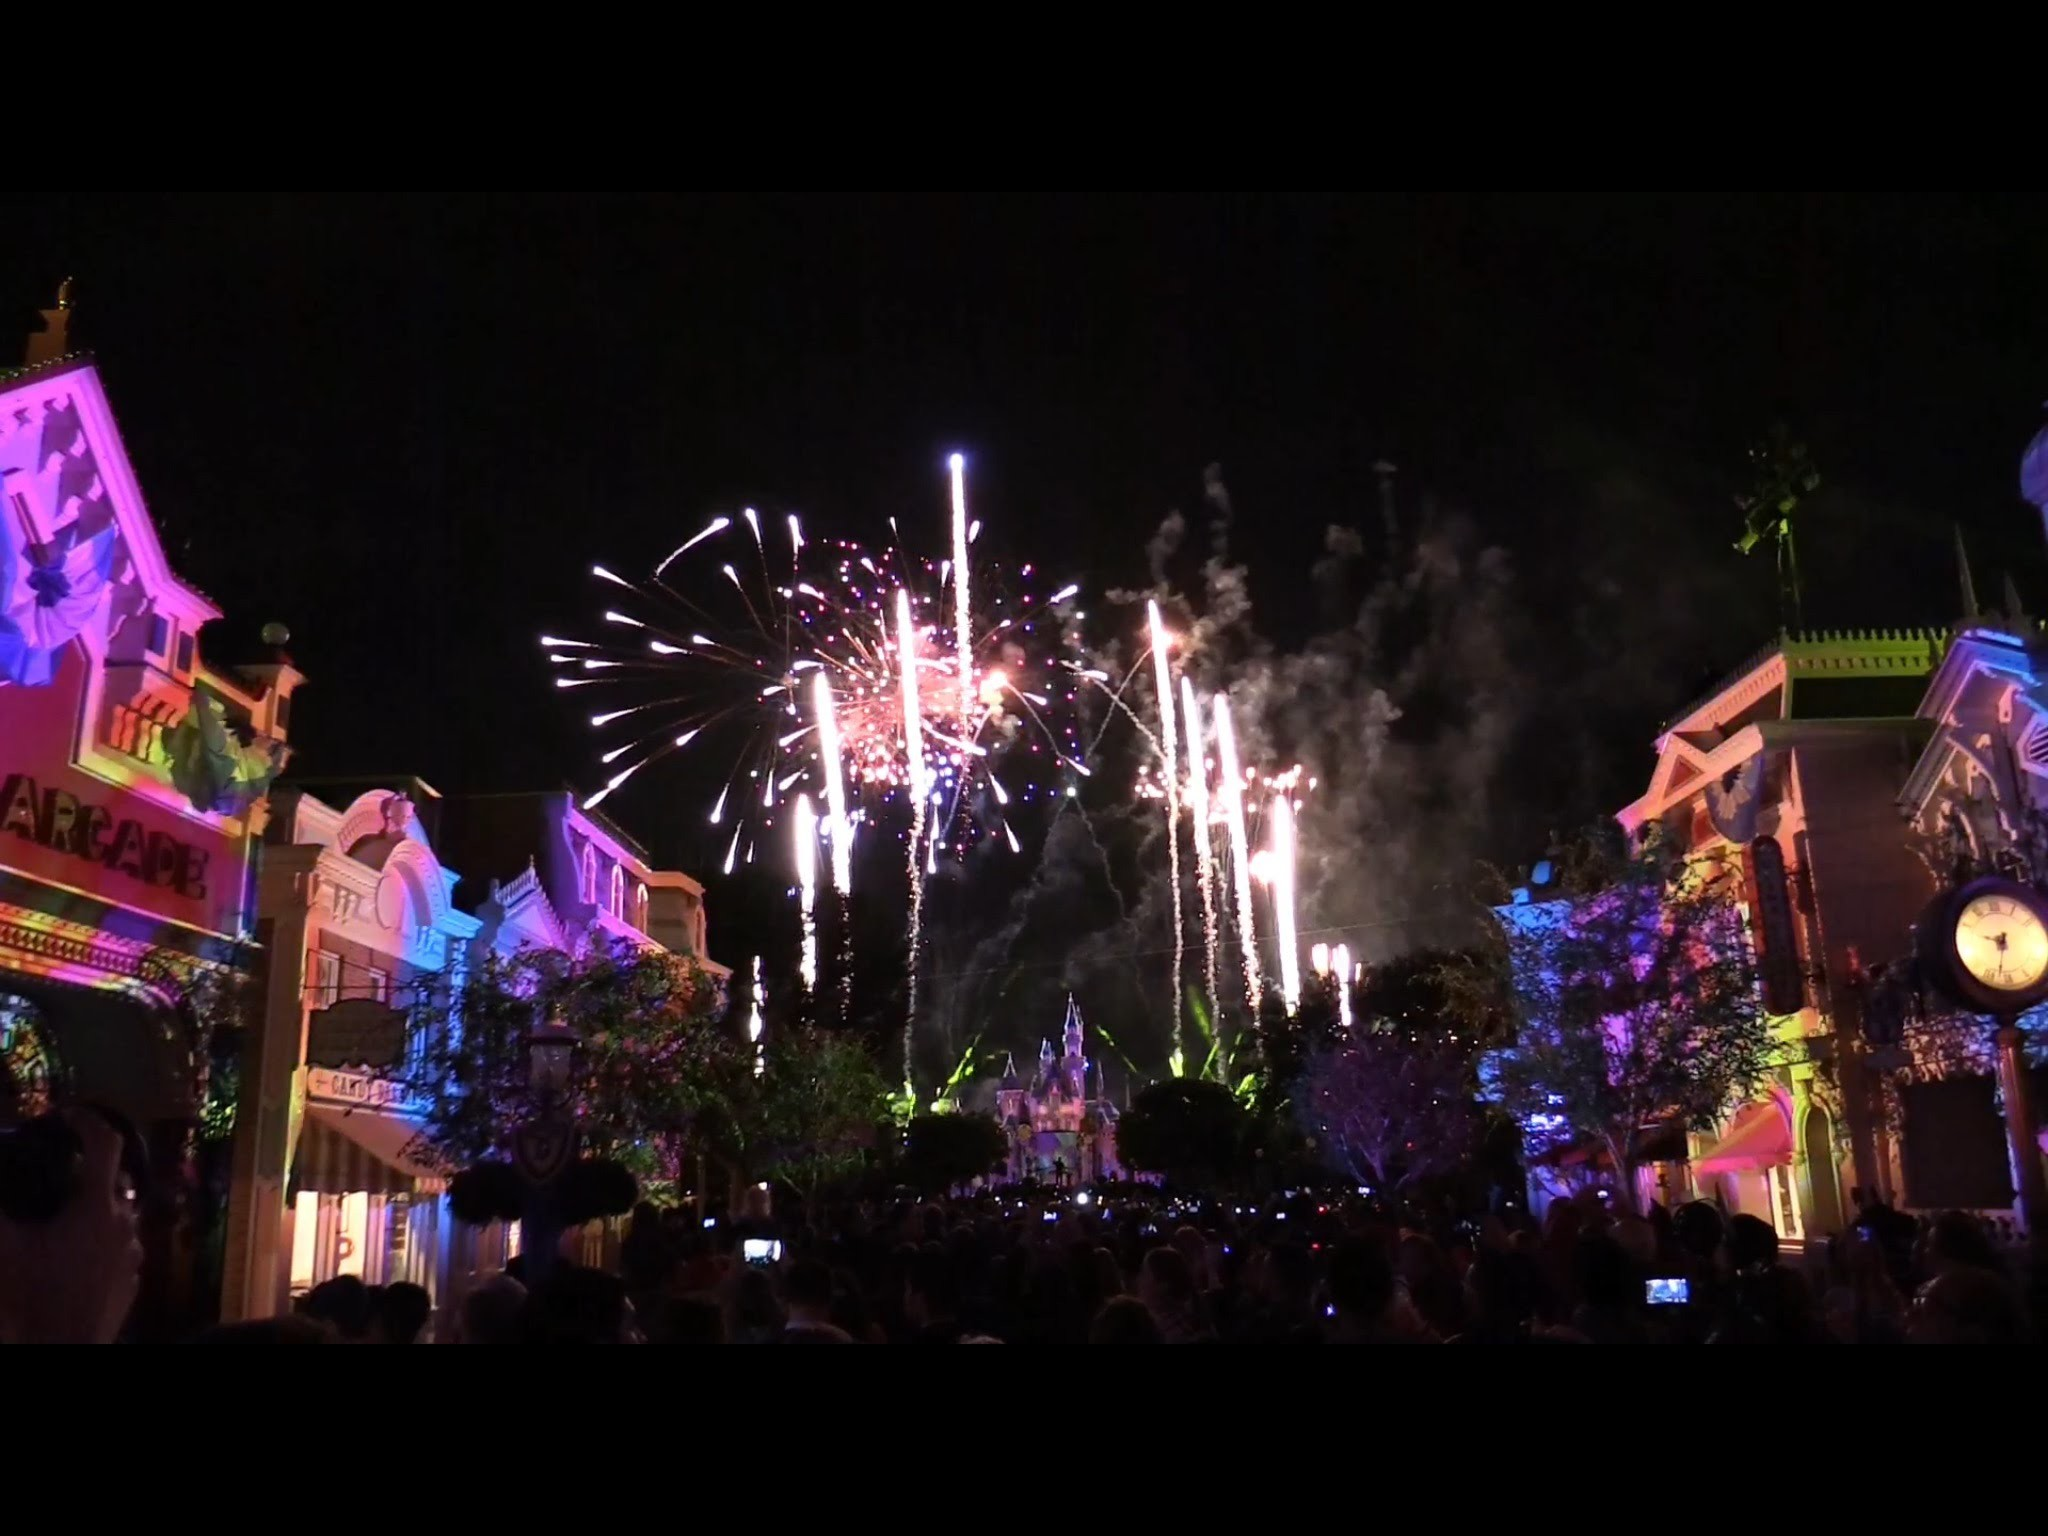 2048x1536 FULL Disneyland Forever fireworks debut with Main Street projections for  60th anniversary - YouTube